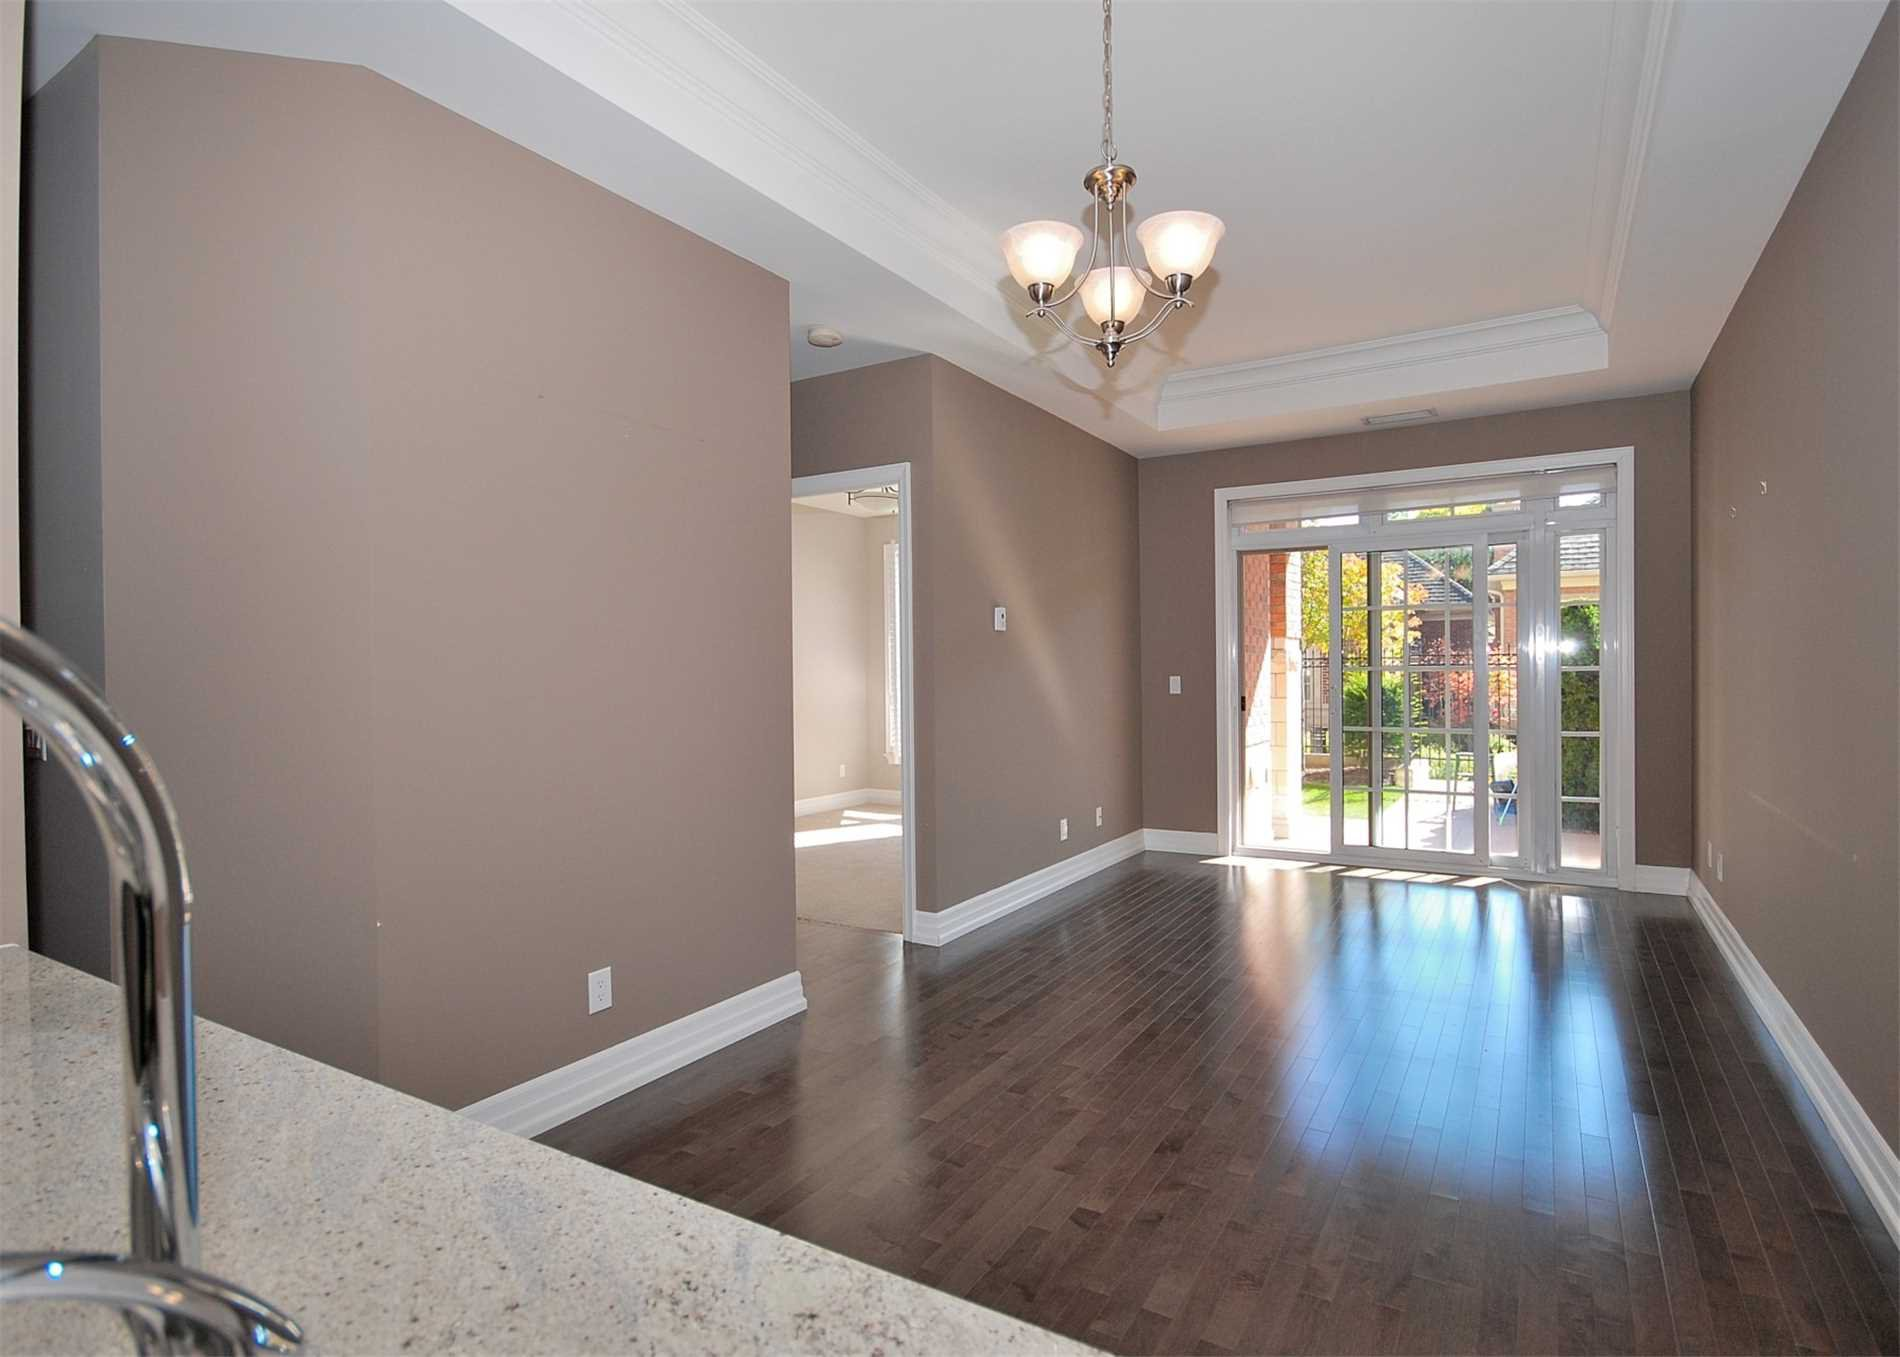 Main Photo:  in Toronto: Bridle Path-Sunnybrook-York Mills Condo for lease (Toronto C12)  : MLS®# C4646772